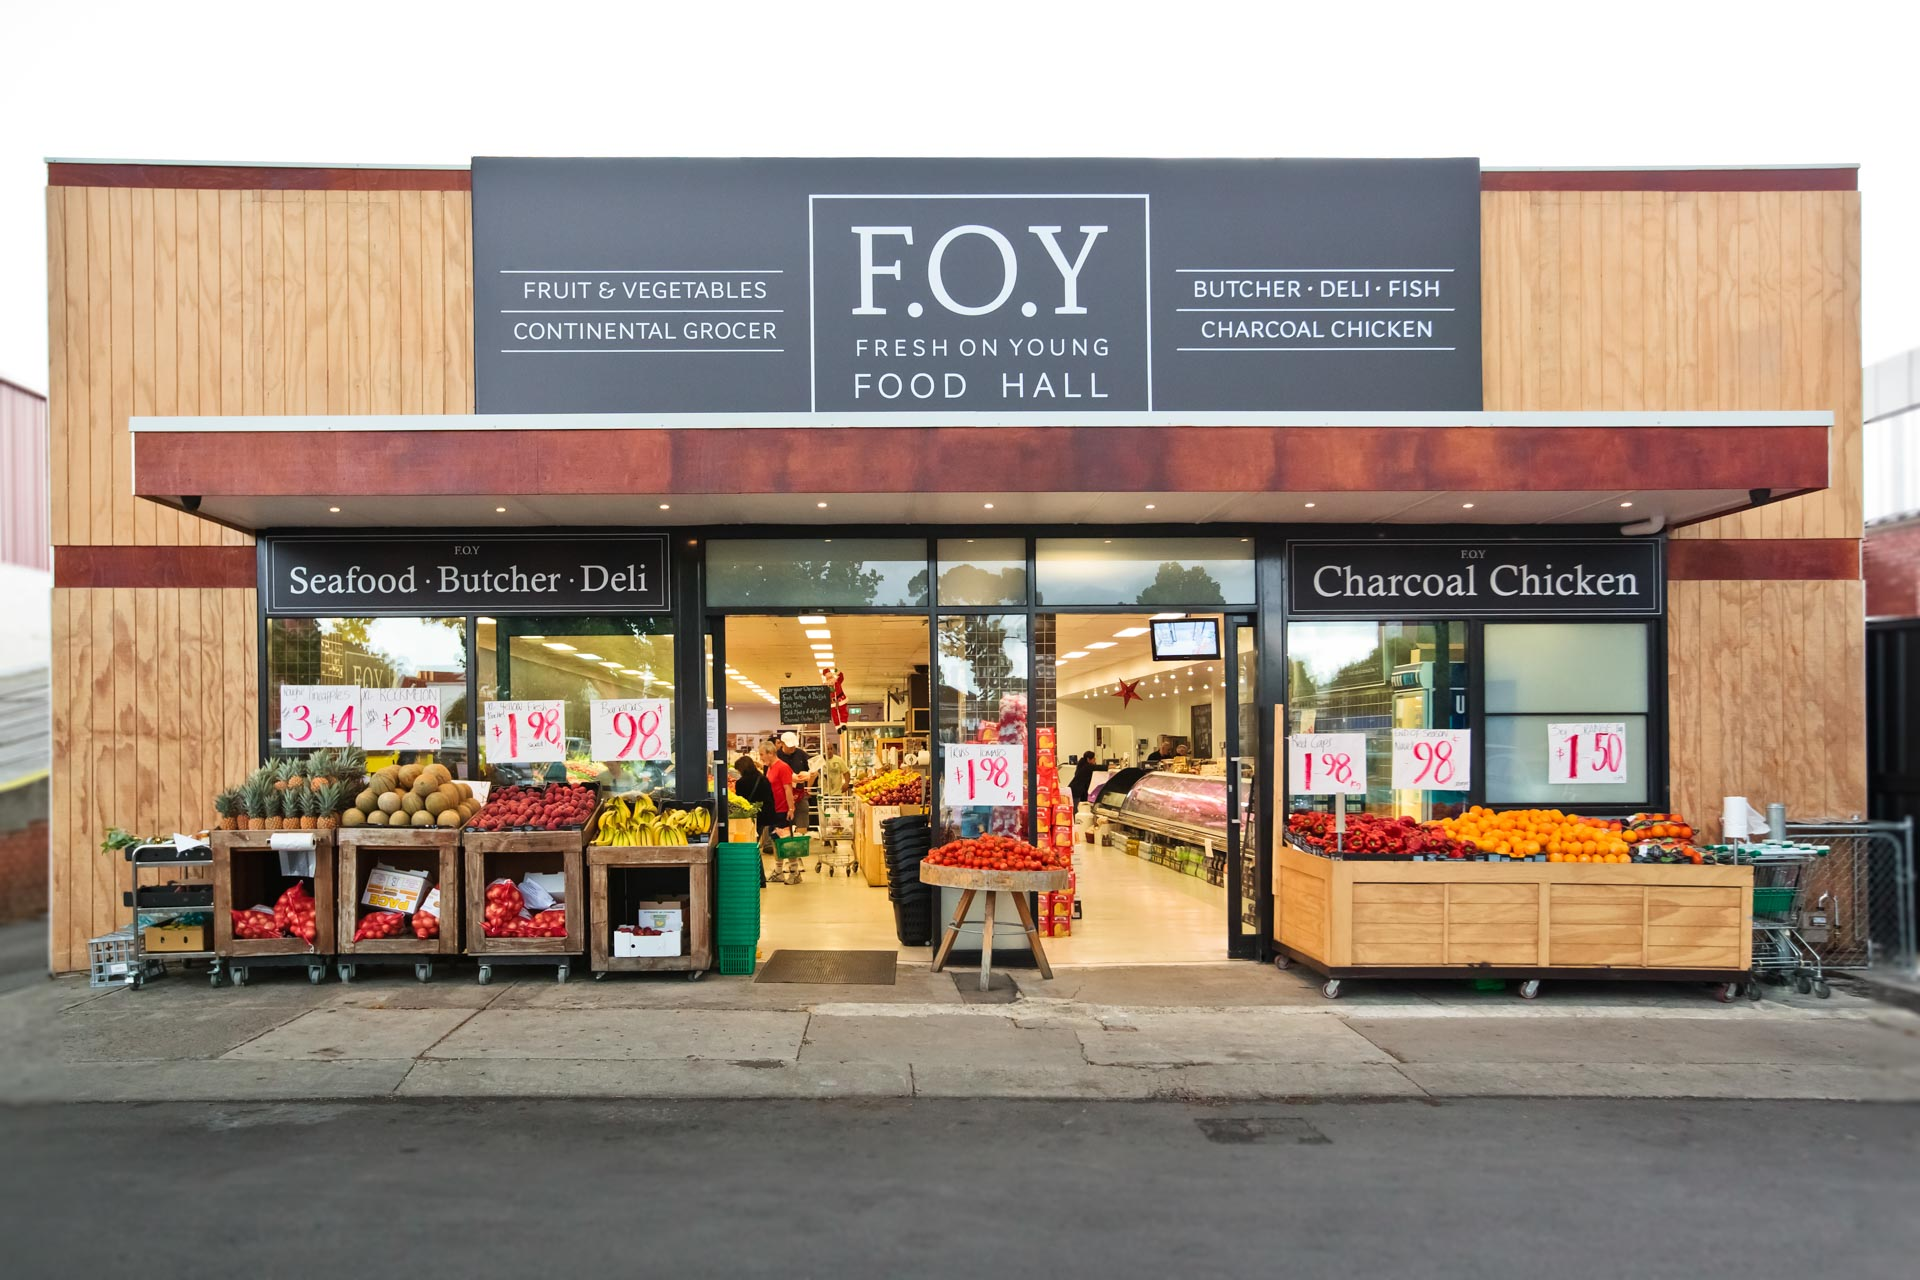 Architectural photograph of fresh food business fresh on young store store front with road and customers in store